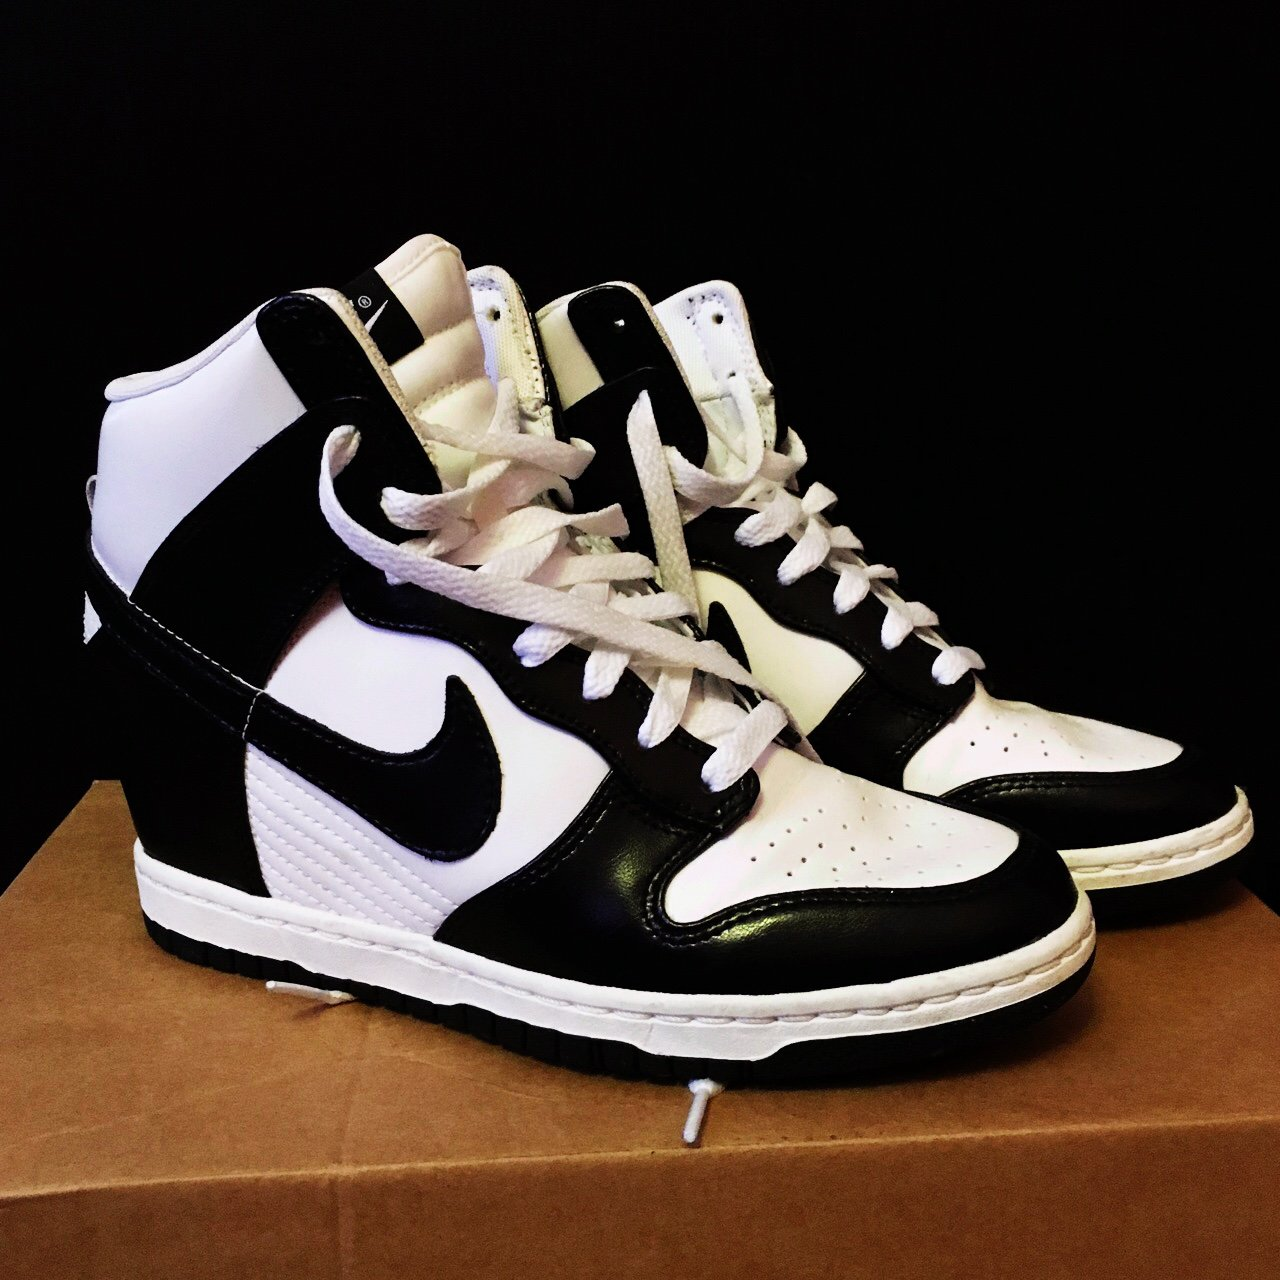 NIKE DUNK SKY HI WEDGE TRAINERS. BLACK AND WHITE LEATHER. UK - Depop 93ce6fac0